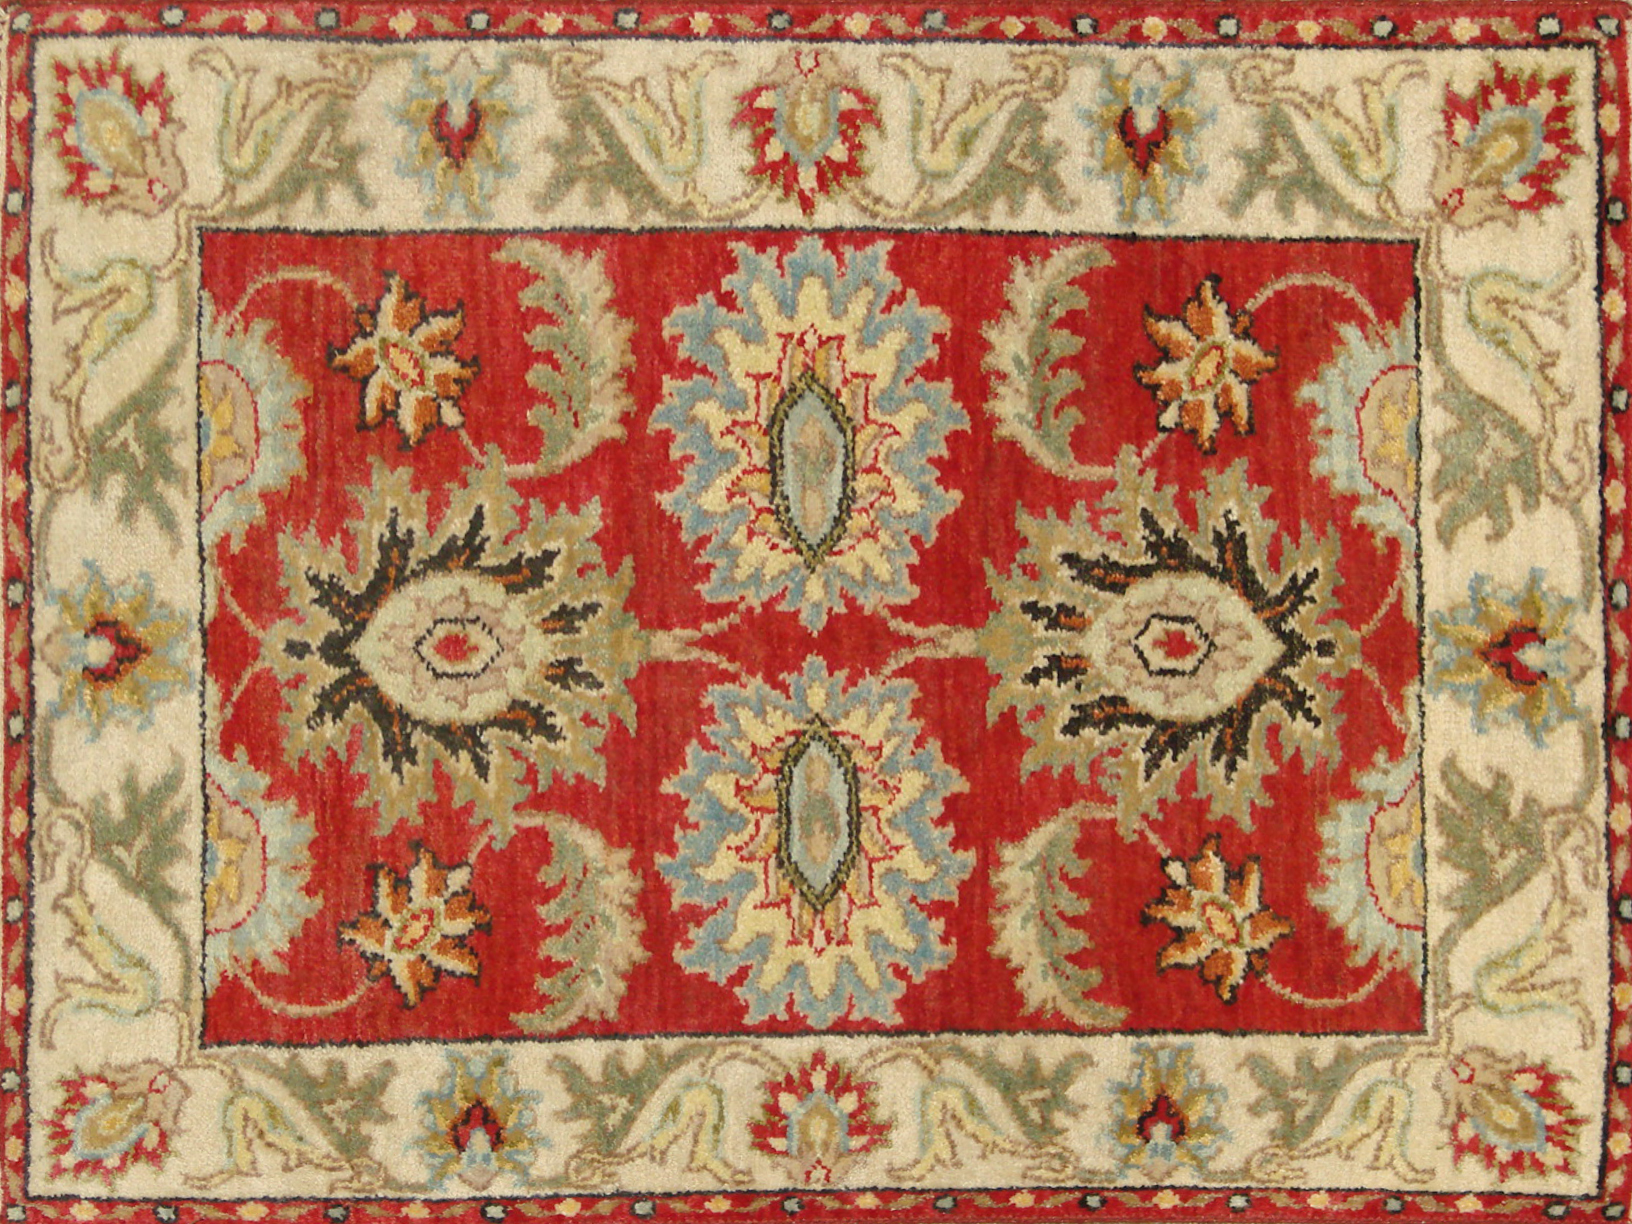 2X3 Traditional Hand Knotted Wool Area Rug - MR20972